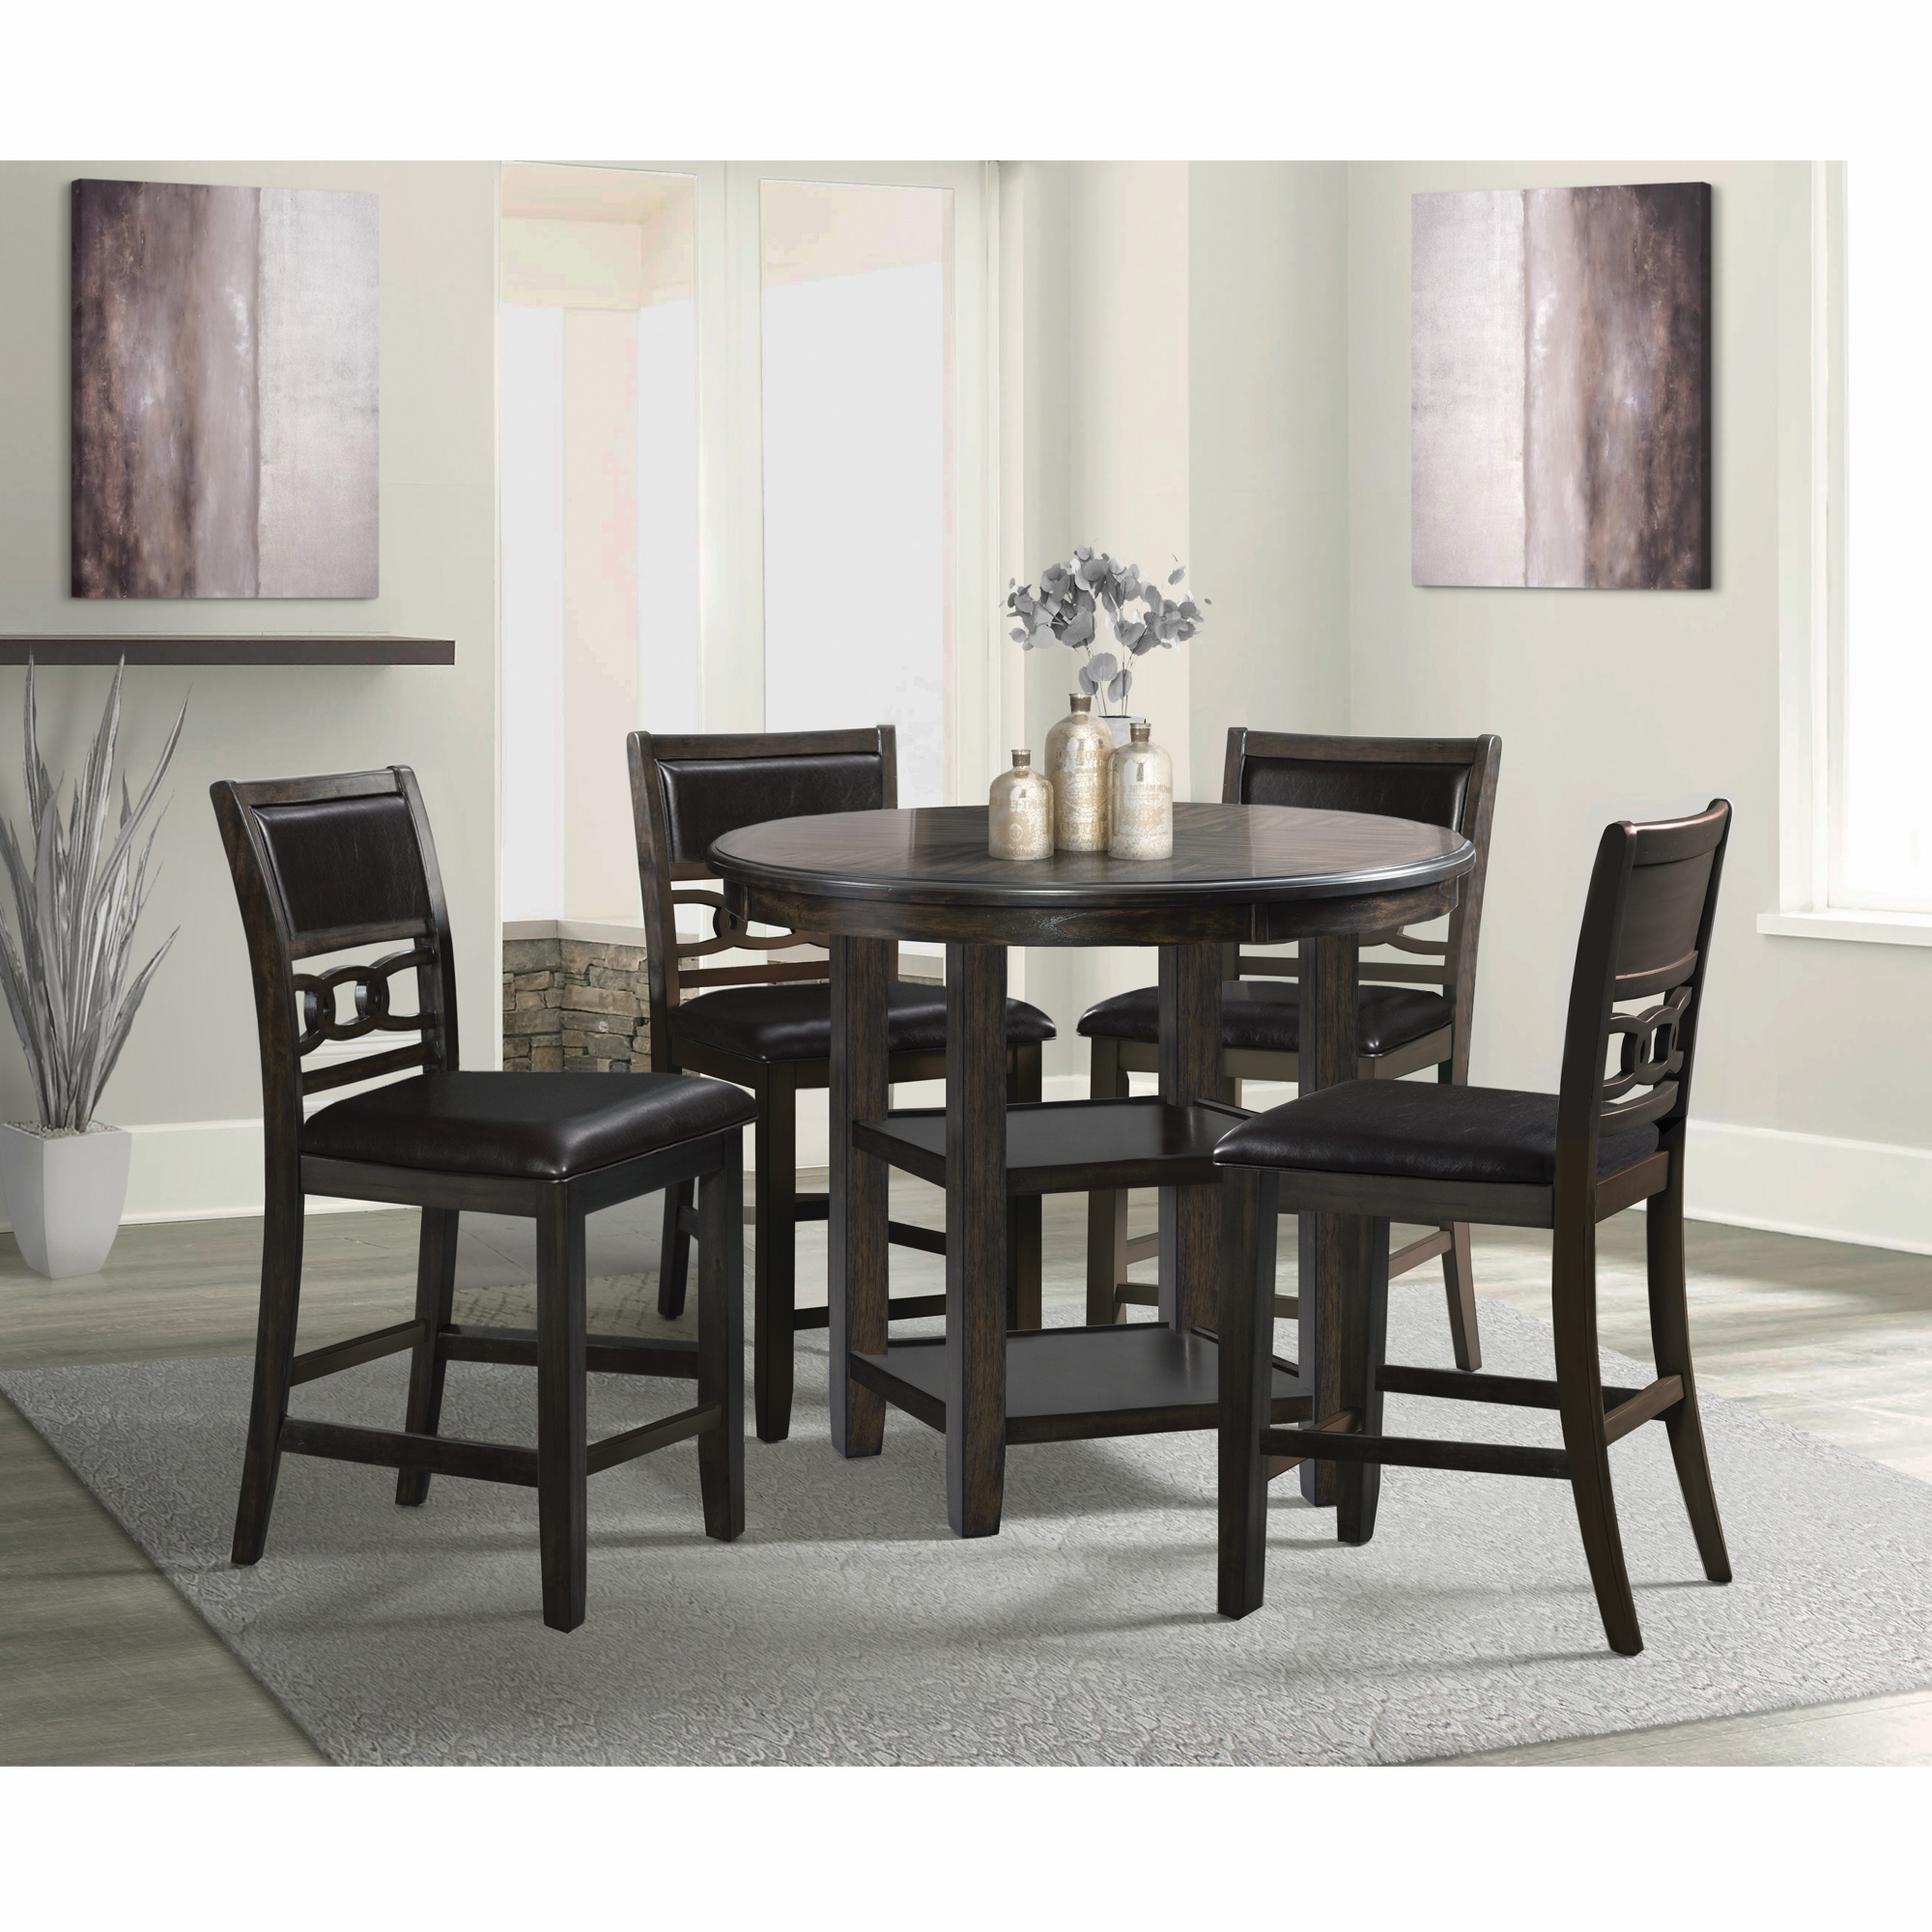 Amherst Counter Height Dining Table